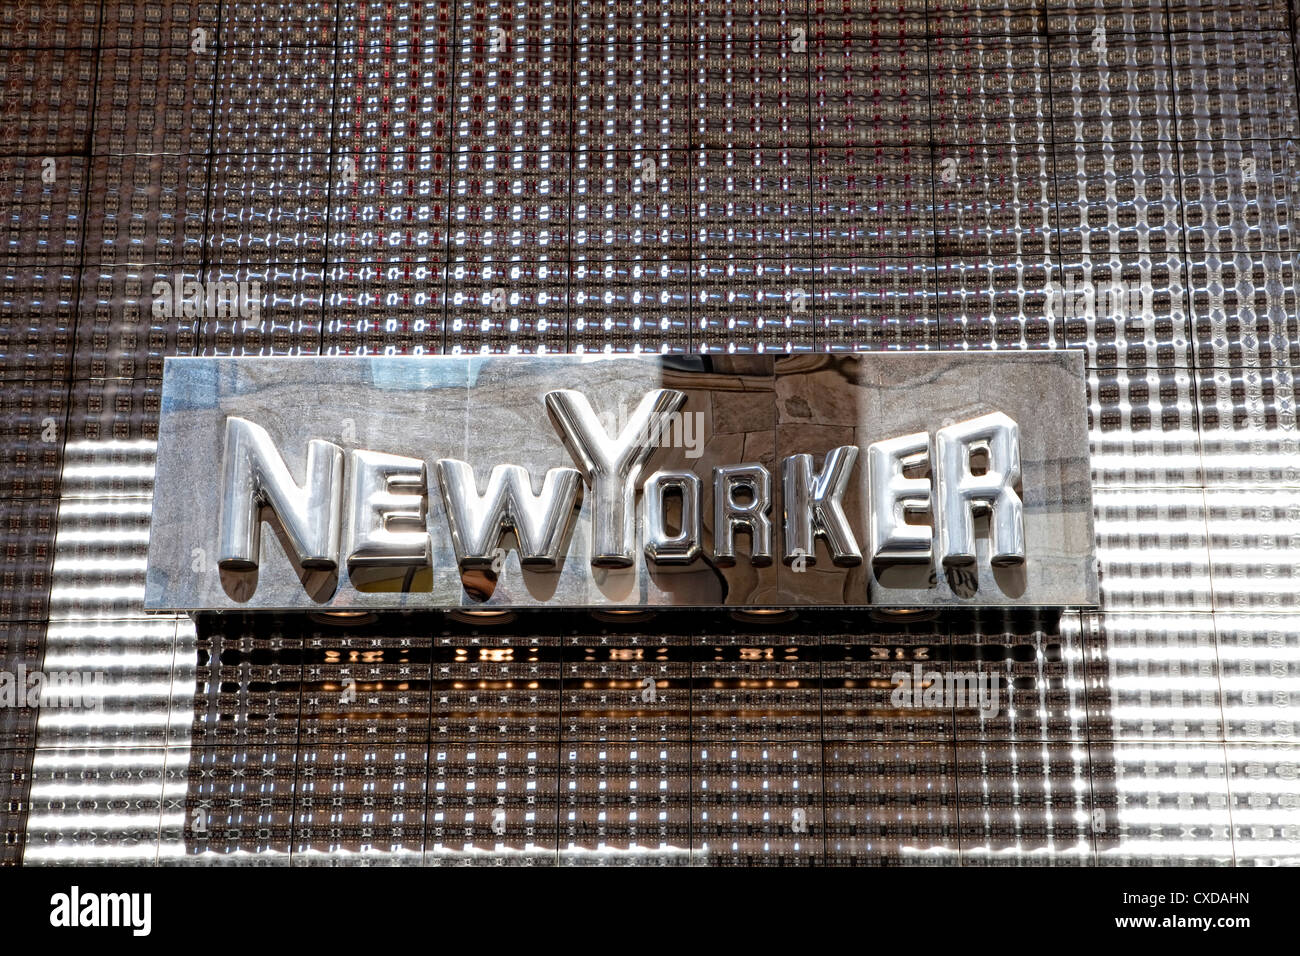 Lettering, logo of the New Yorker fashion company, Cologne, Germany, Europe - Stock Image